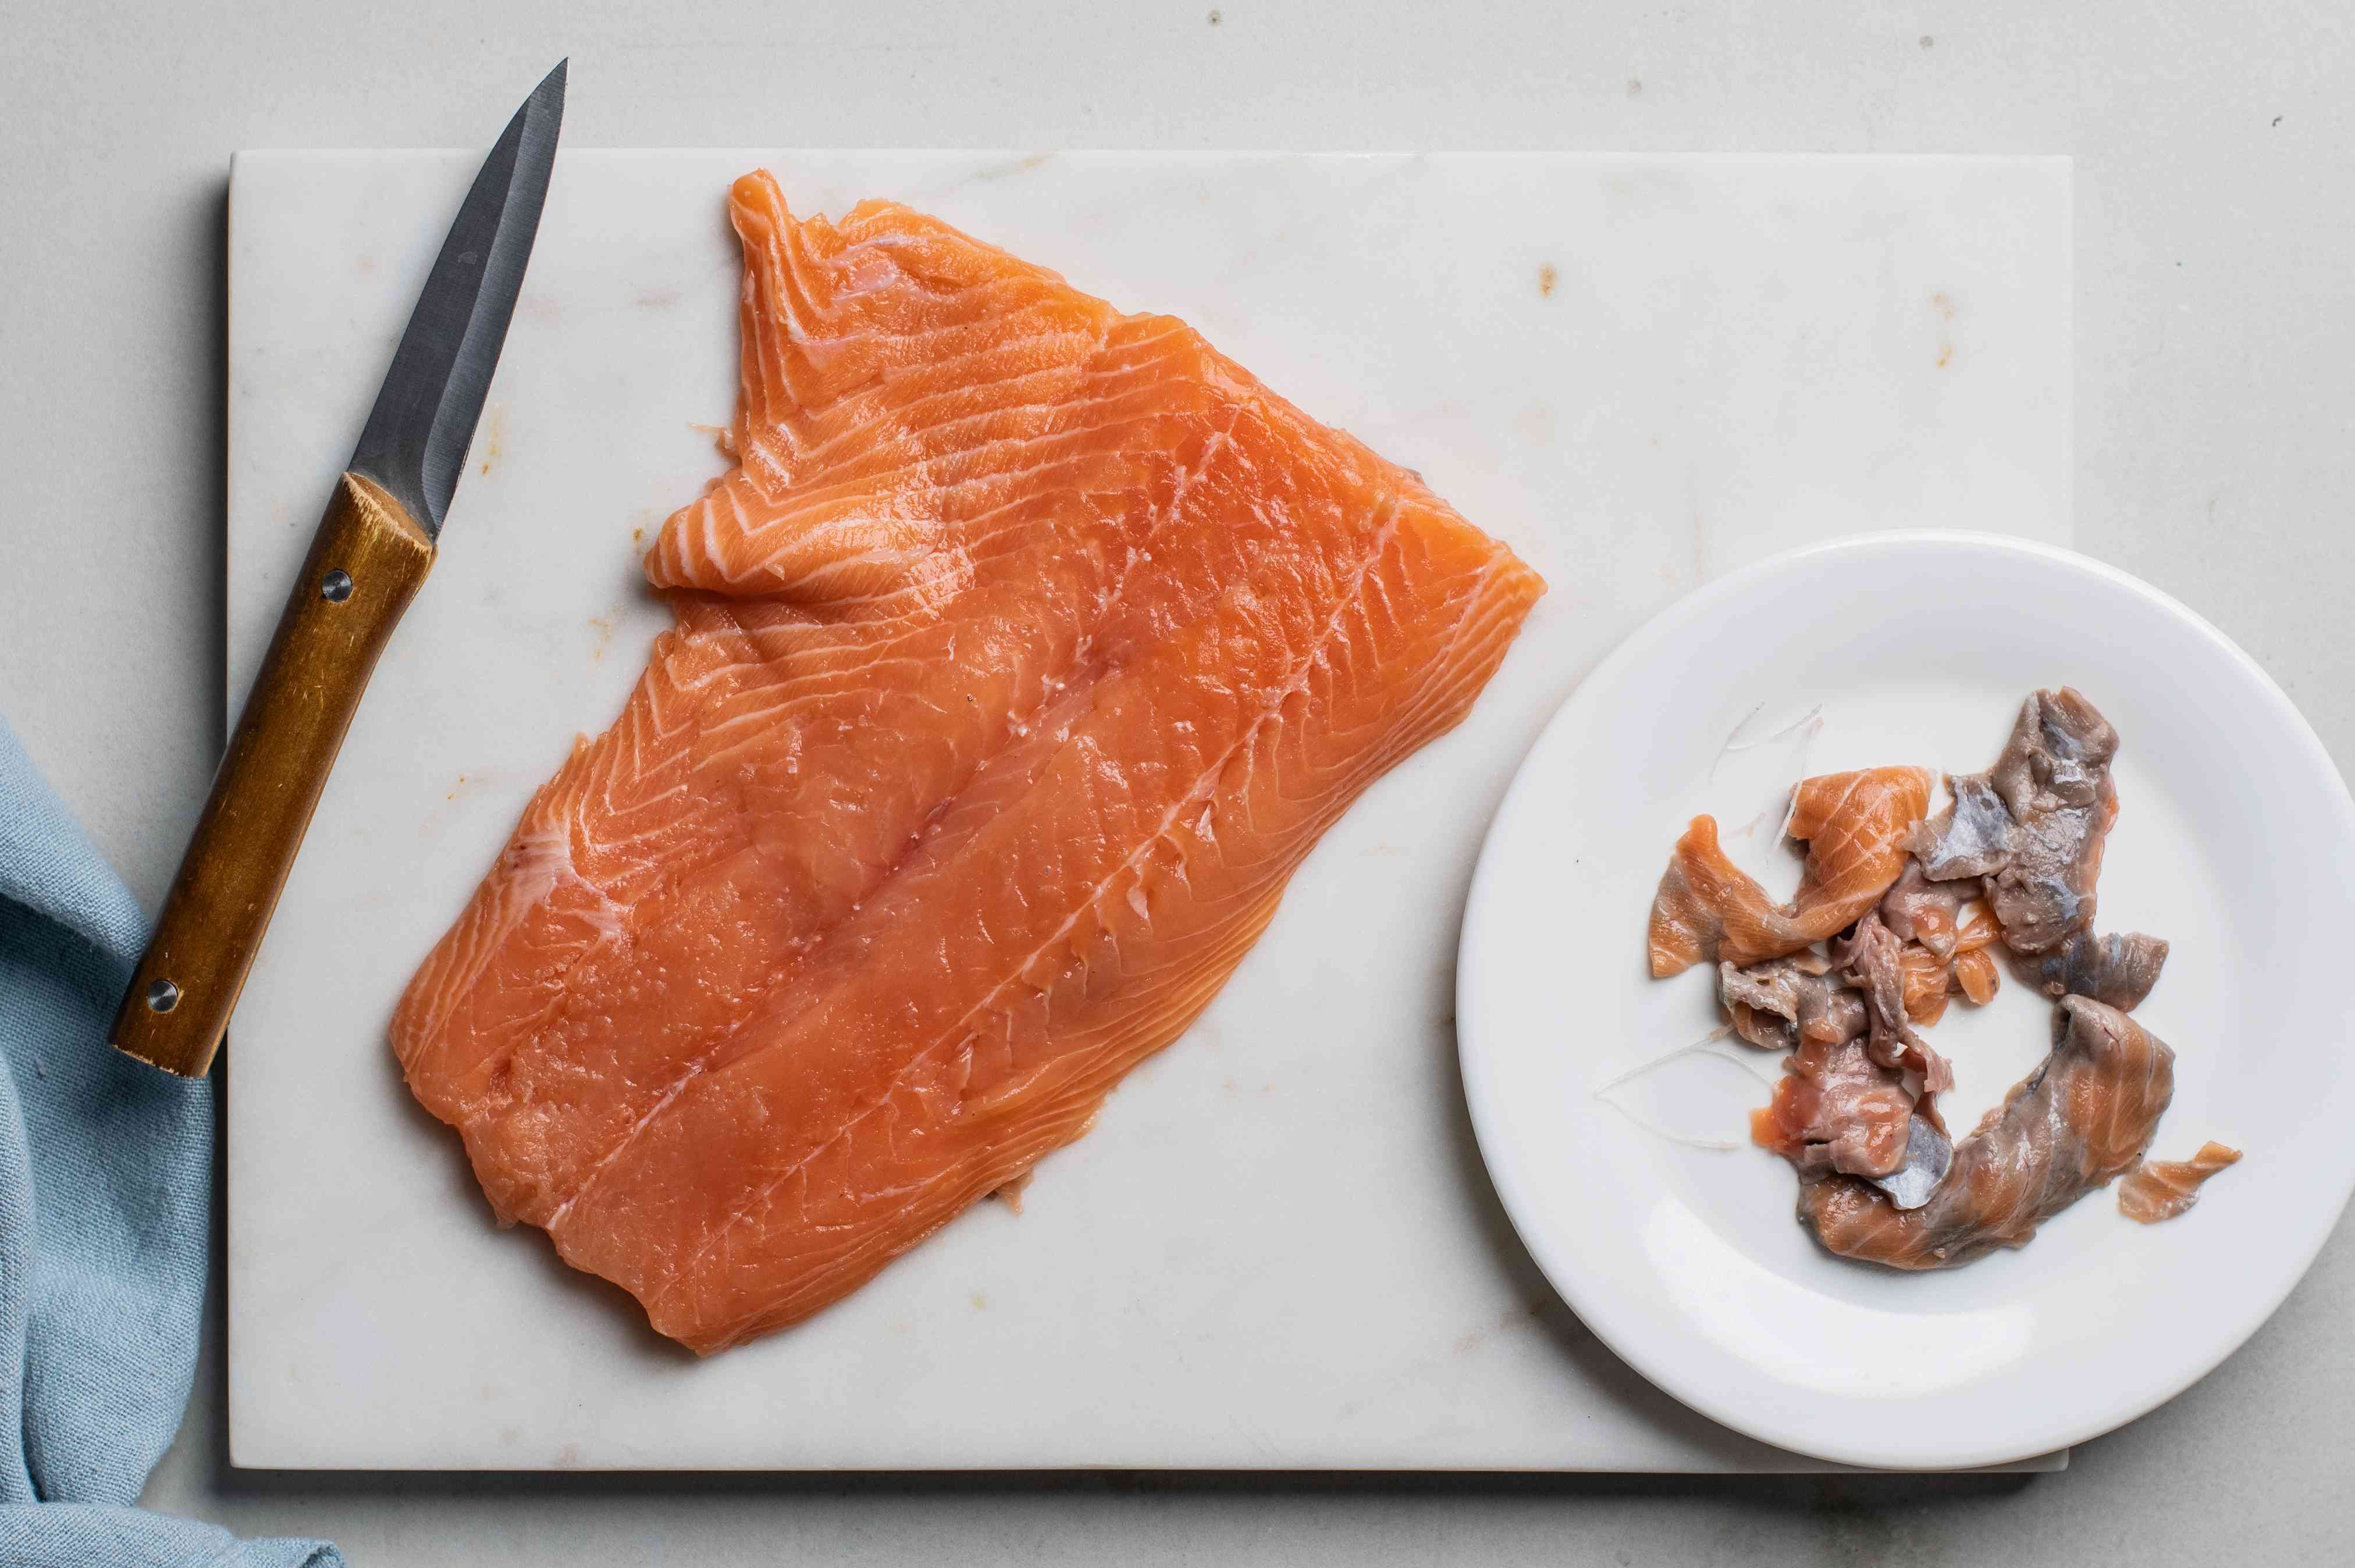 Remove pin bones and dark gray bloodline from salmon